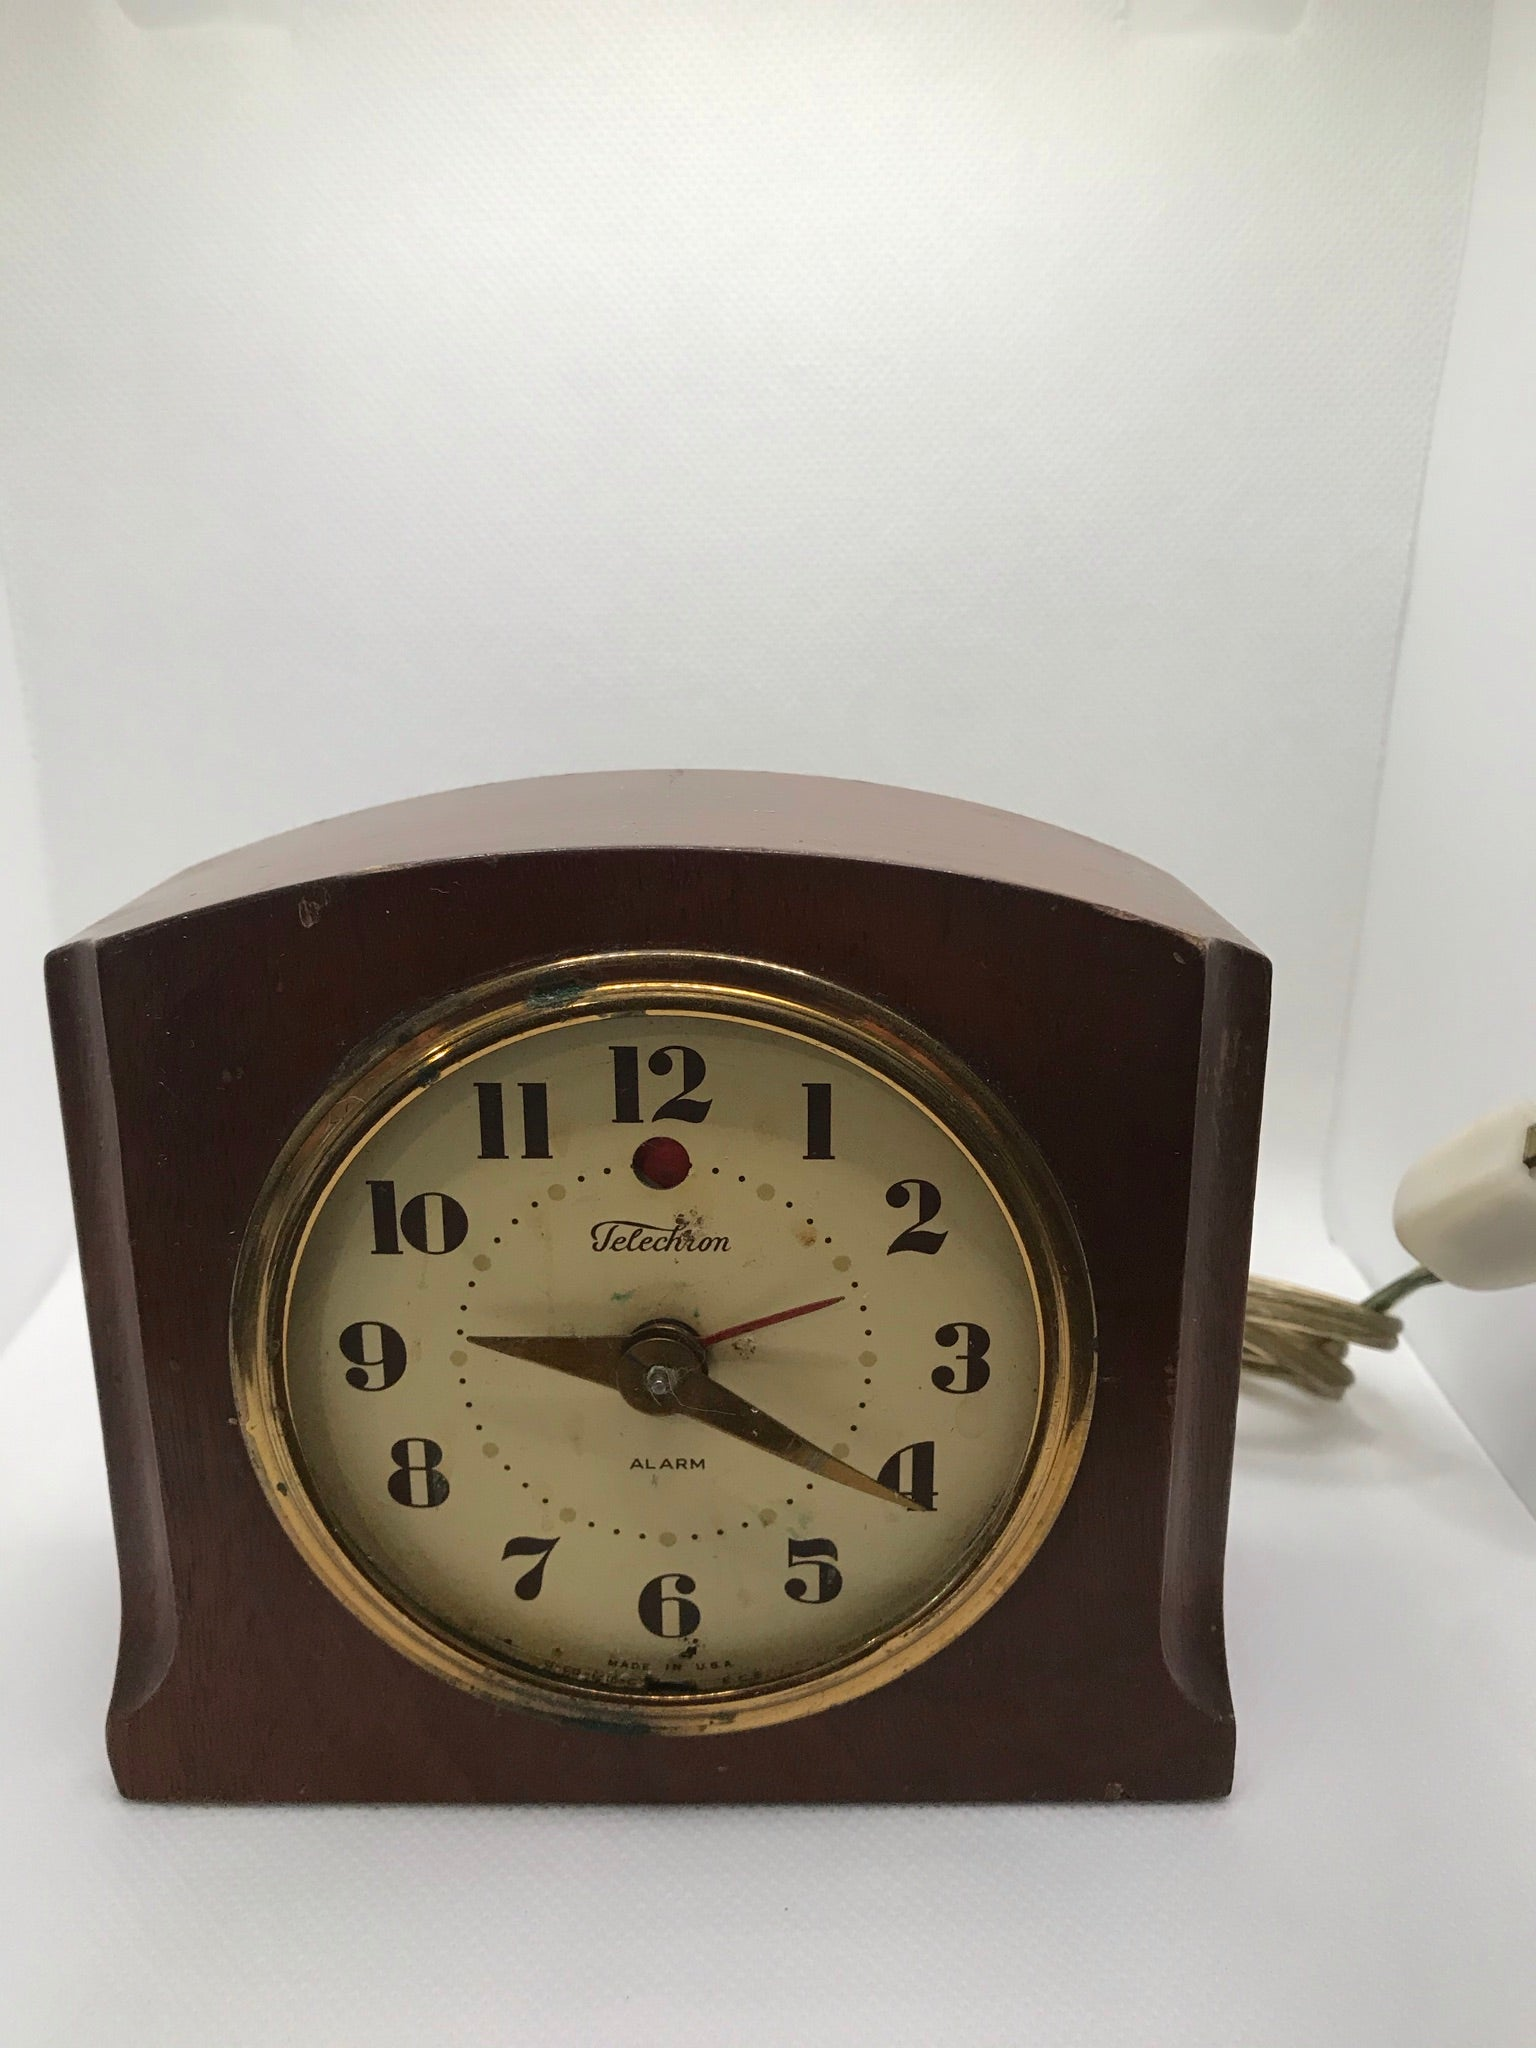 Vintage | Telechron Electric Clock by GE |Solid Wooden Case